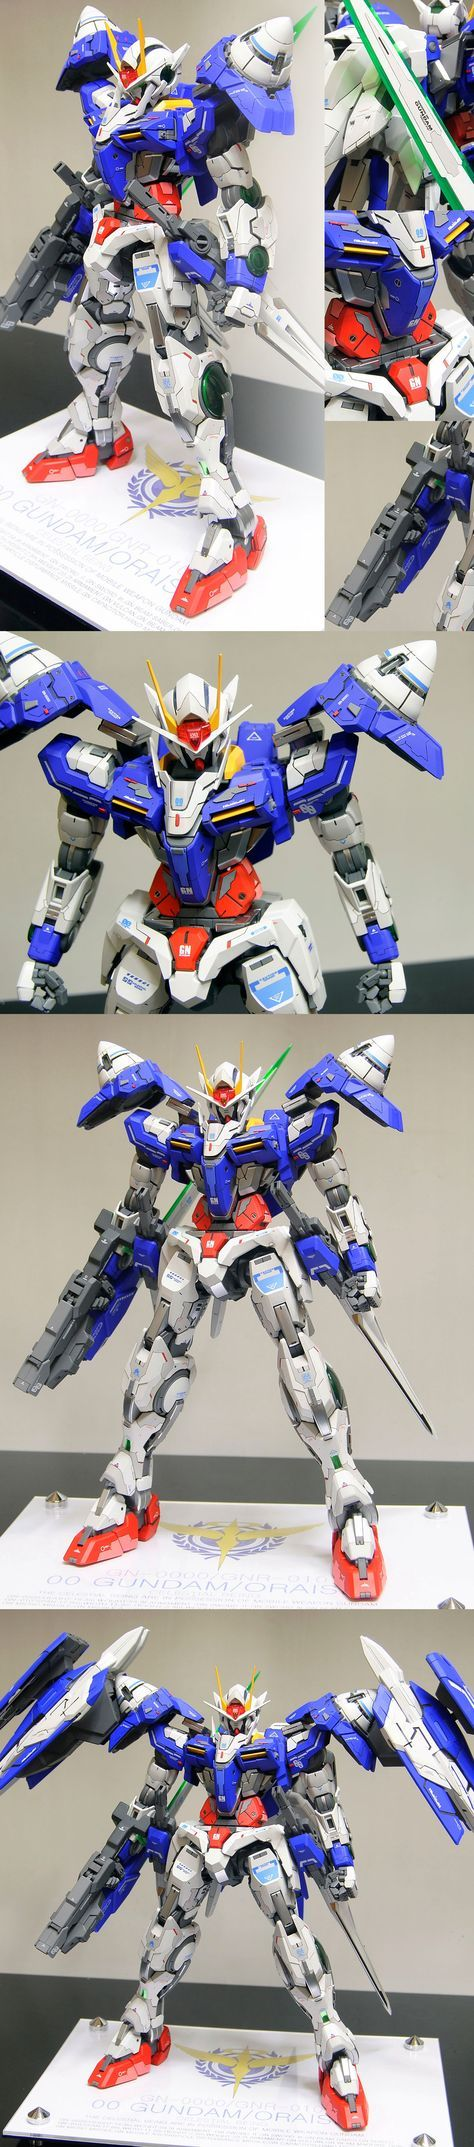 OO raiser custom WOW look at all that detail